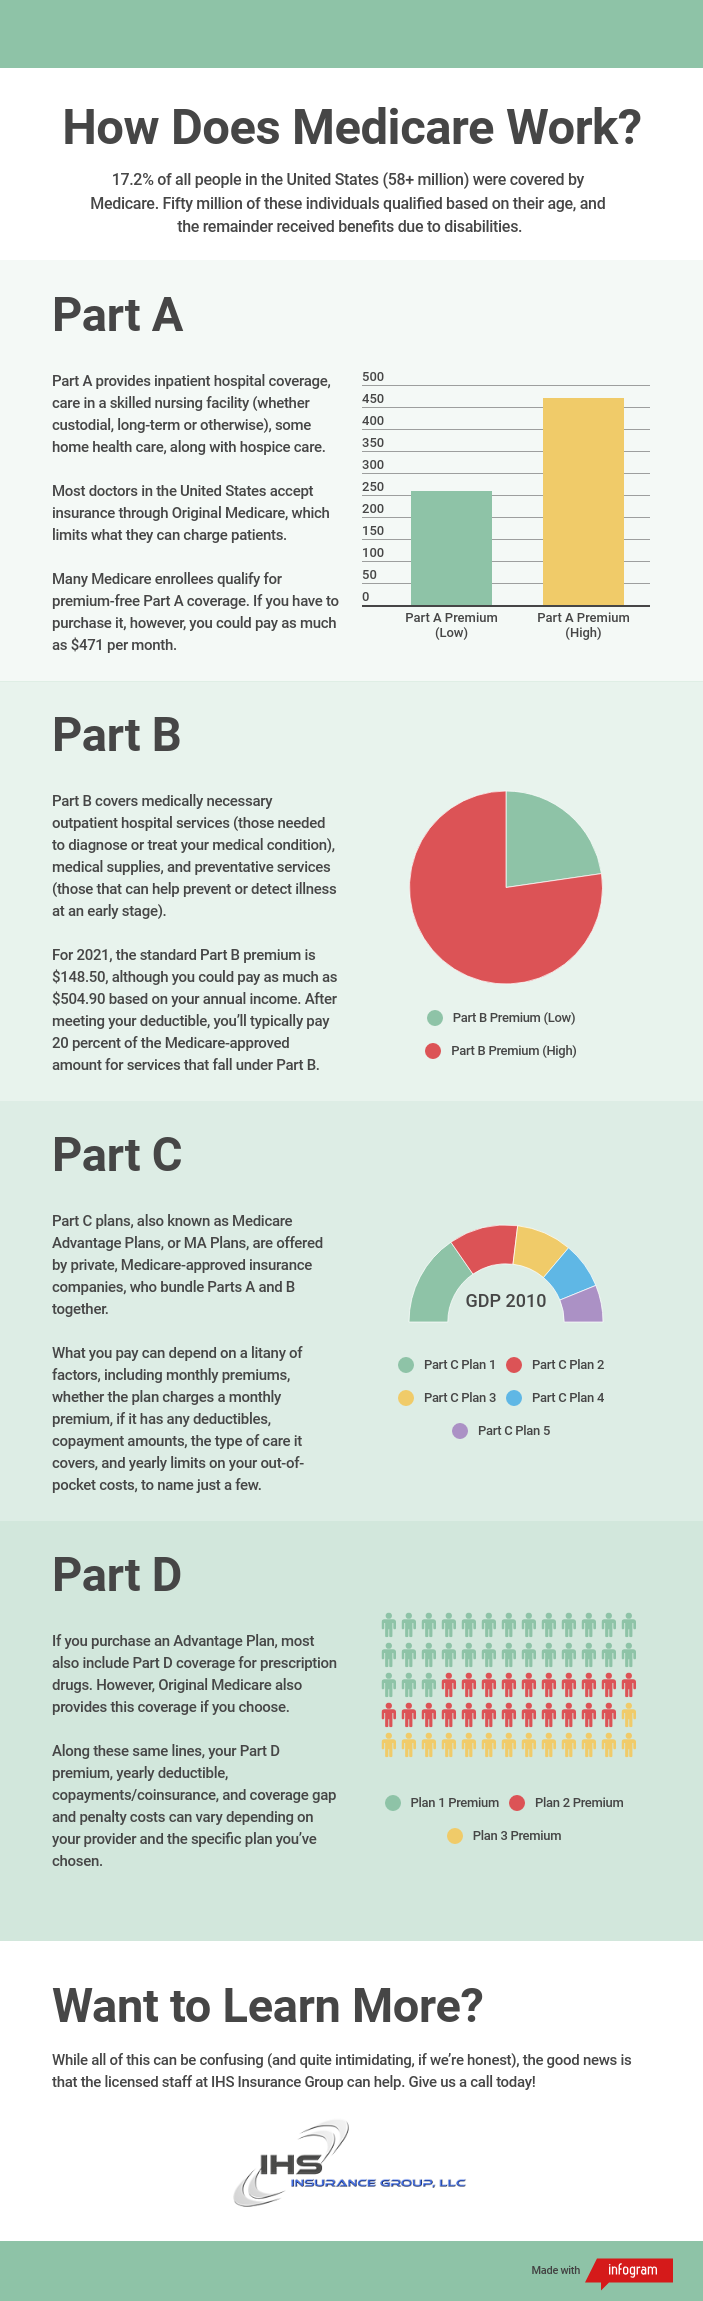 How Medicare Works Infographic